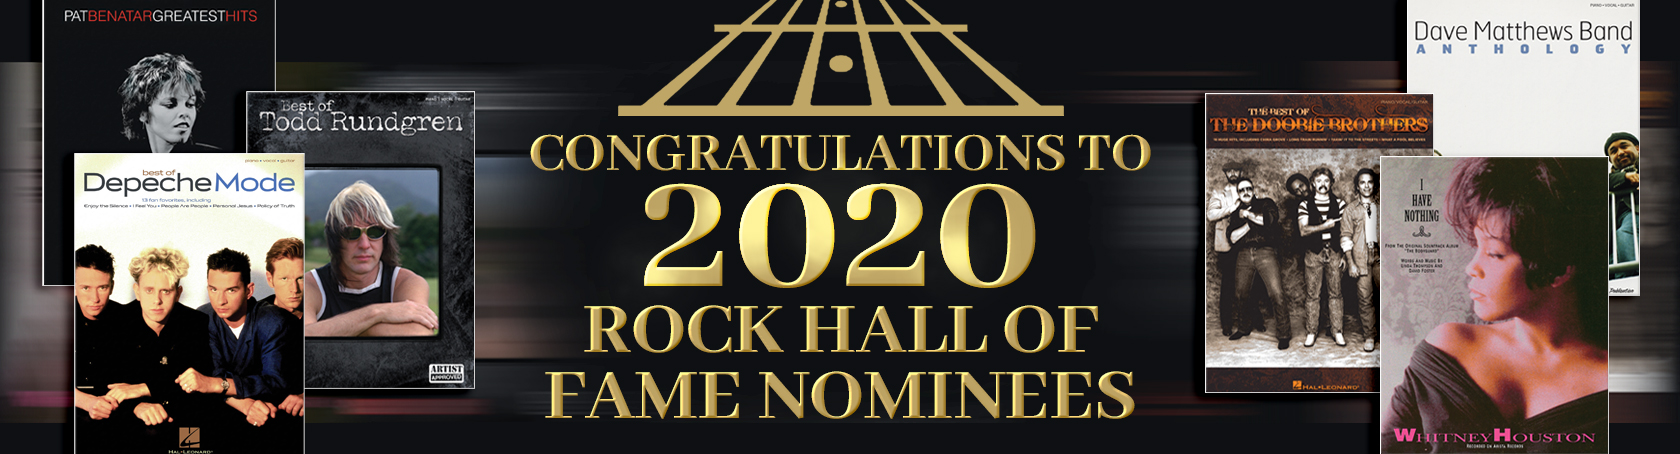 Banner for Rock 'n' Roll Hall of Fame Nominees